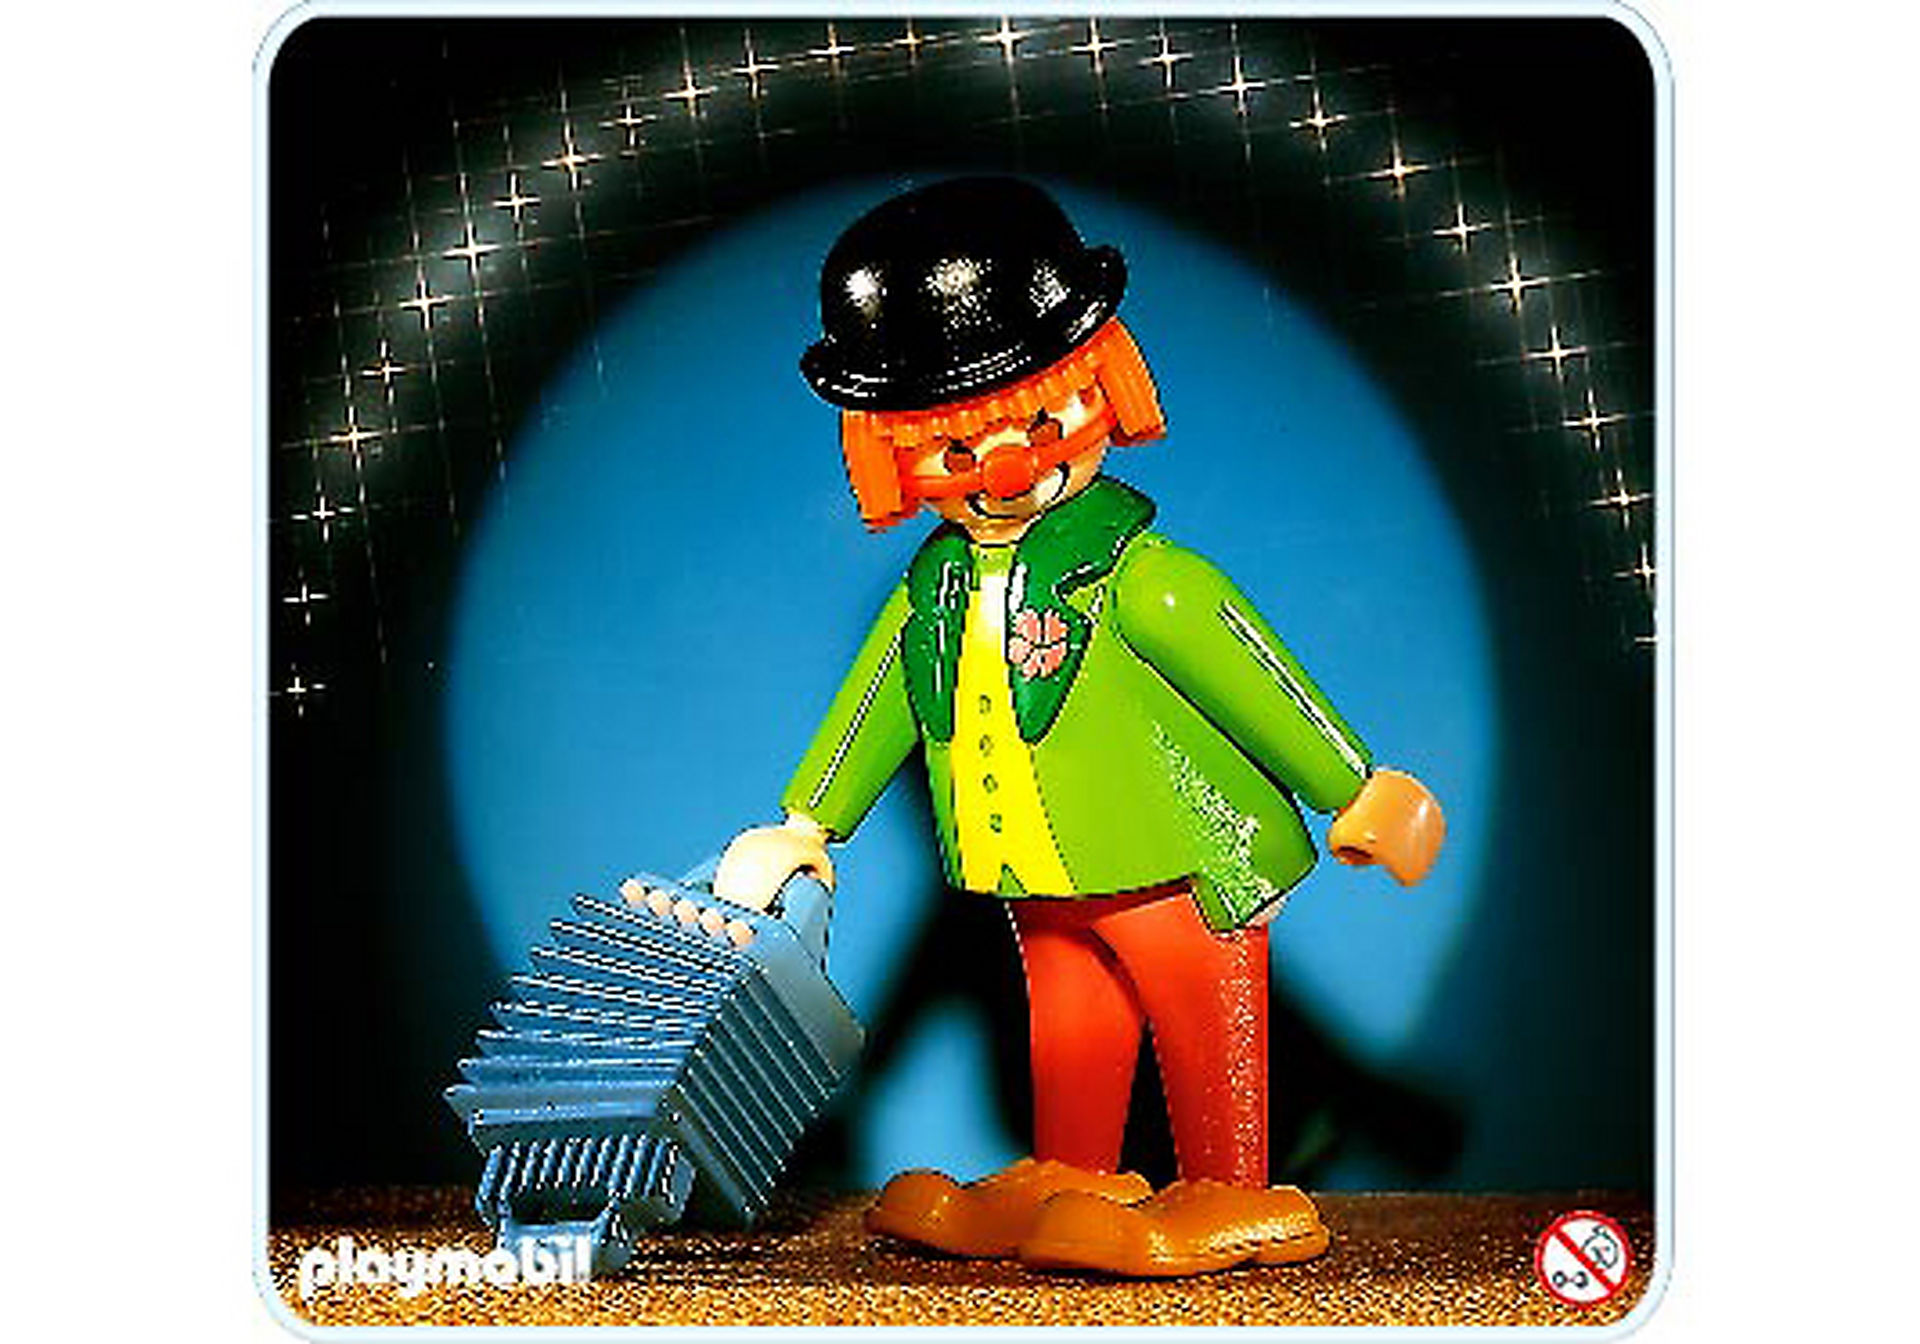 http://media.playmobil.com/i/playmobil/3319-A_product_detail/Clown / accordéon